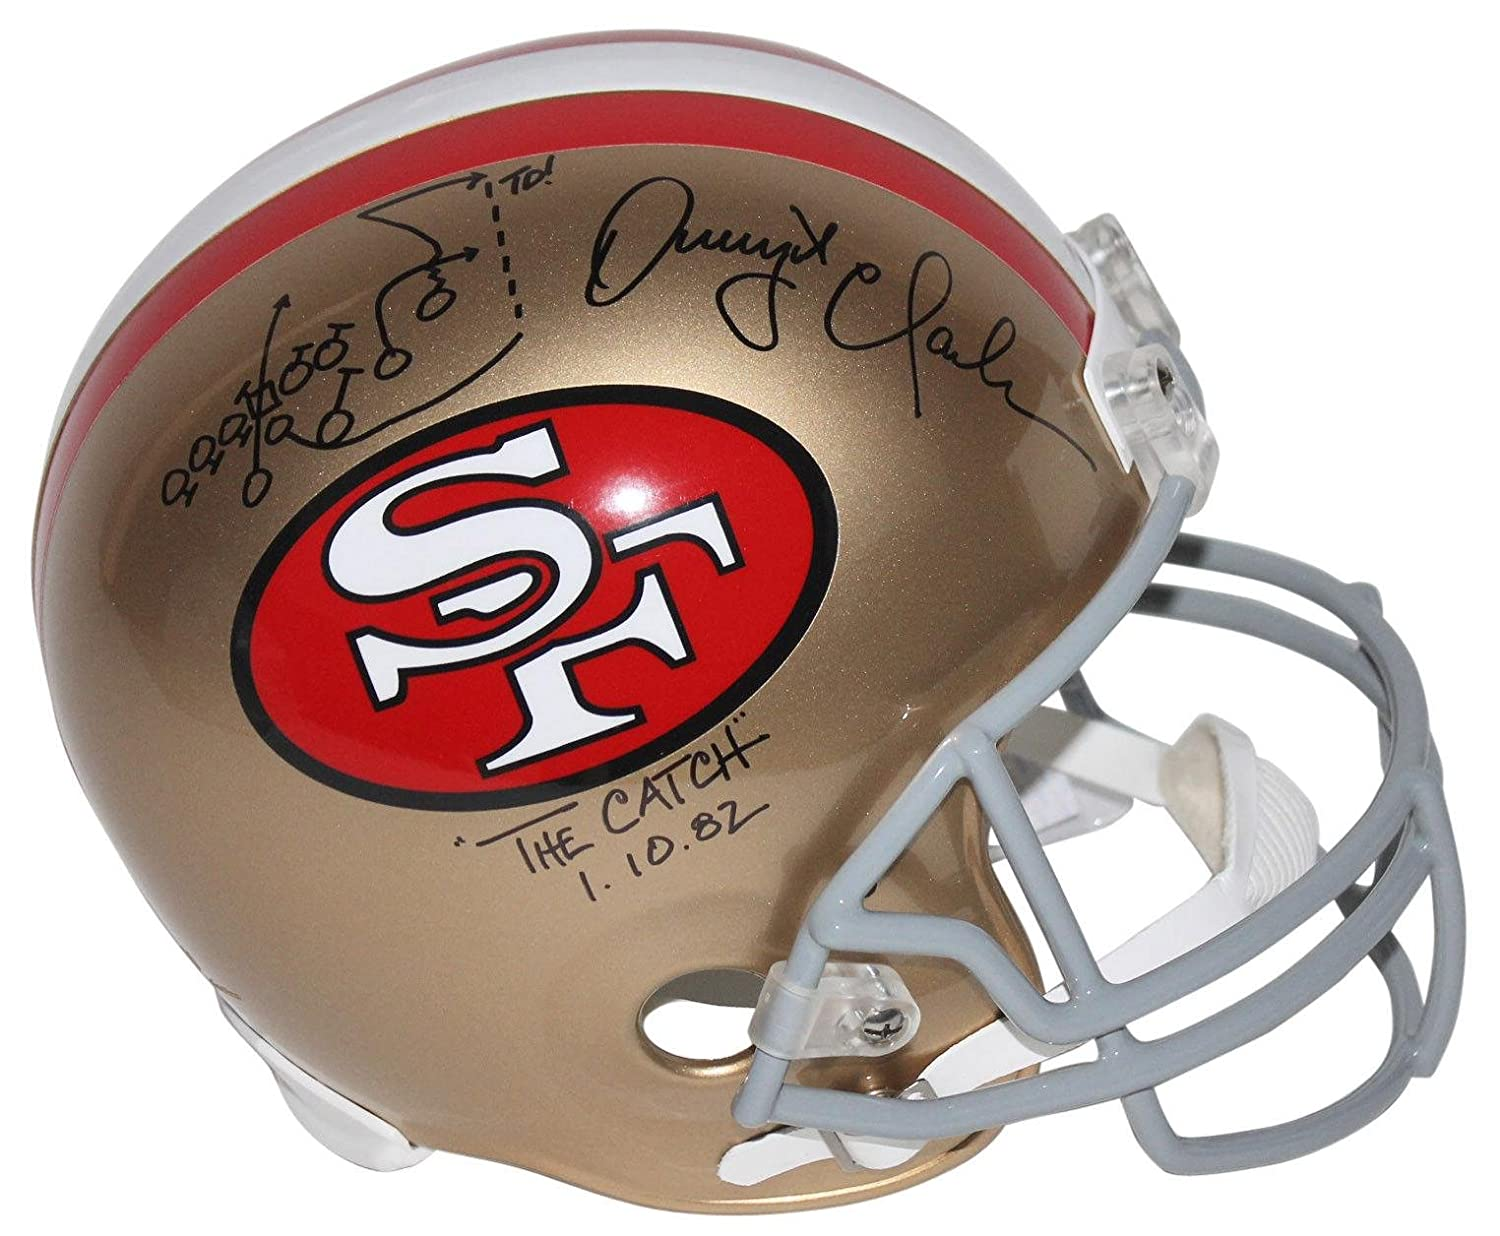 Amazon.com: 49Ers Dwight Clark 'The Catch' Signed F/S Rep Helmet W/Hand  Drawn Play - PSA/DNA Certified - Autographed NFL Helmets: Sports  Collectibles